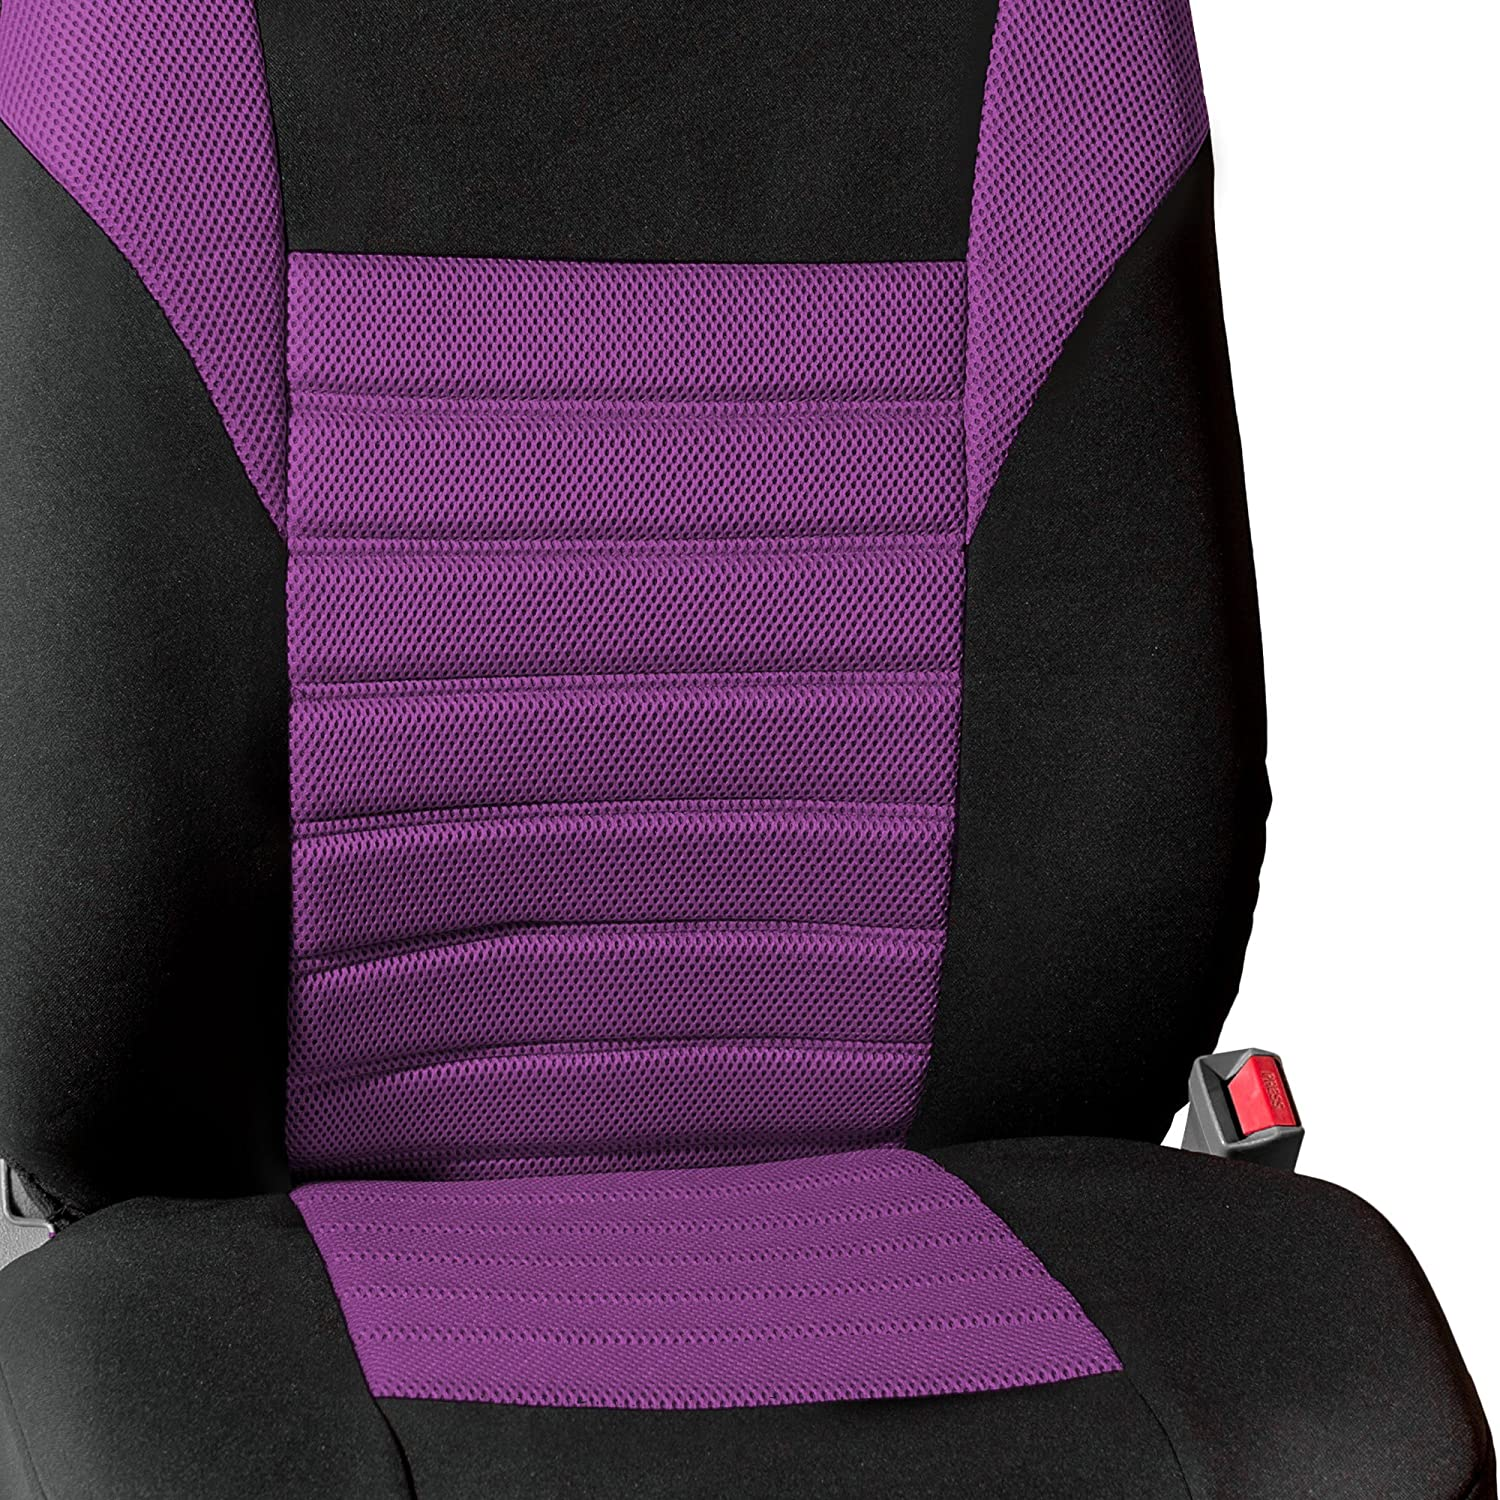 Premium 3D Air mesh Design Airbag and Rear Split Bench Compatible Red FH Group FB068RED115 Universal Car Seat Cover